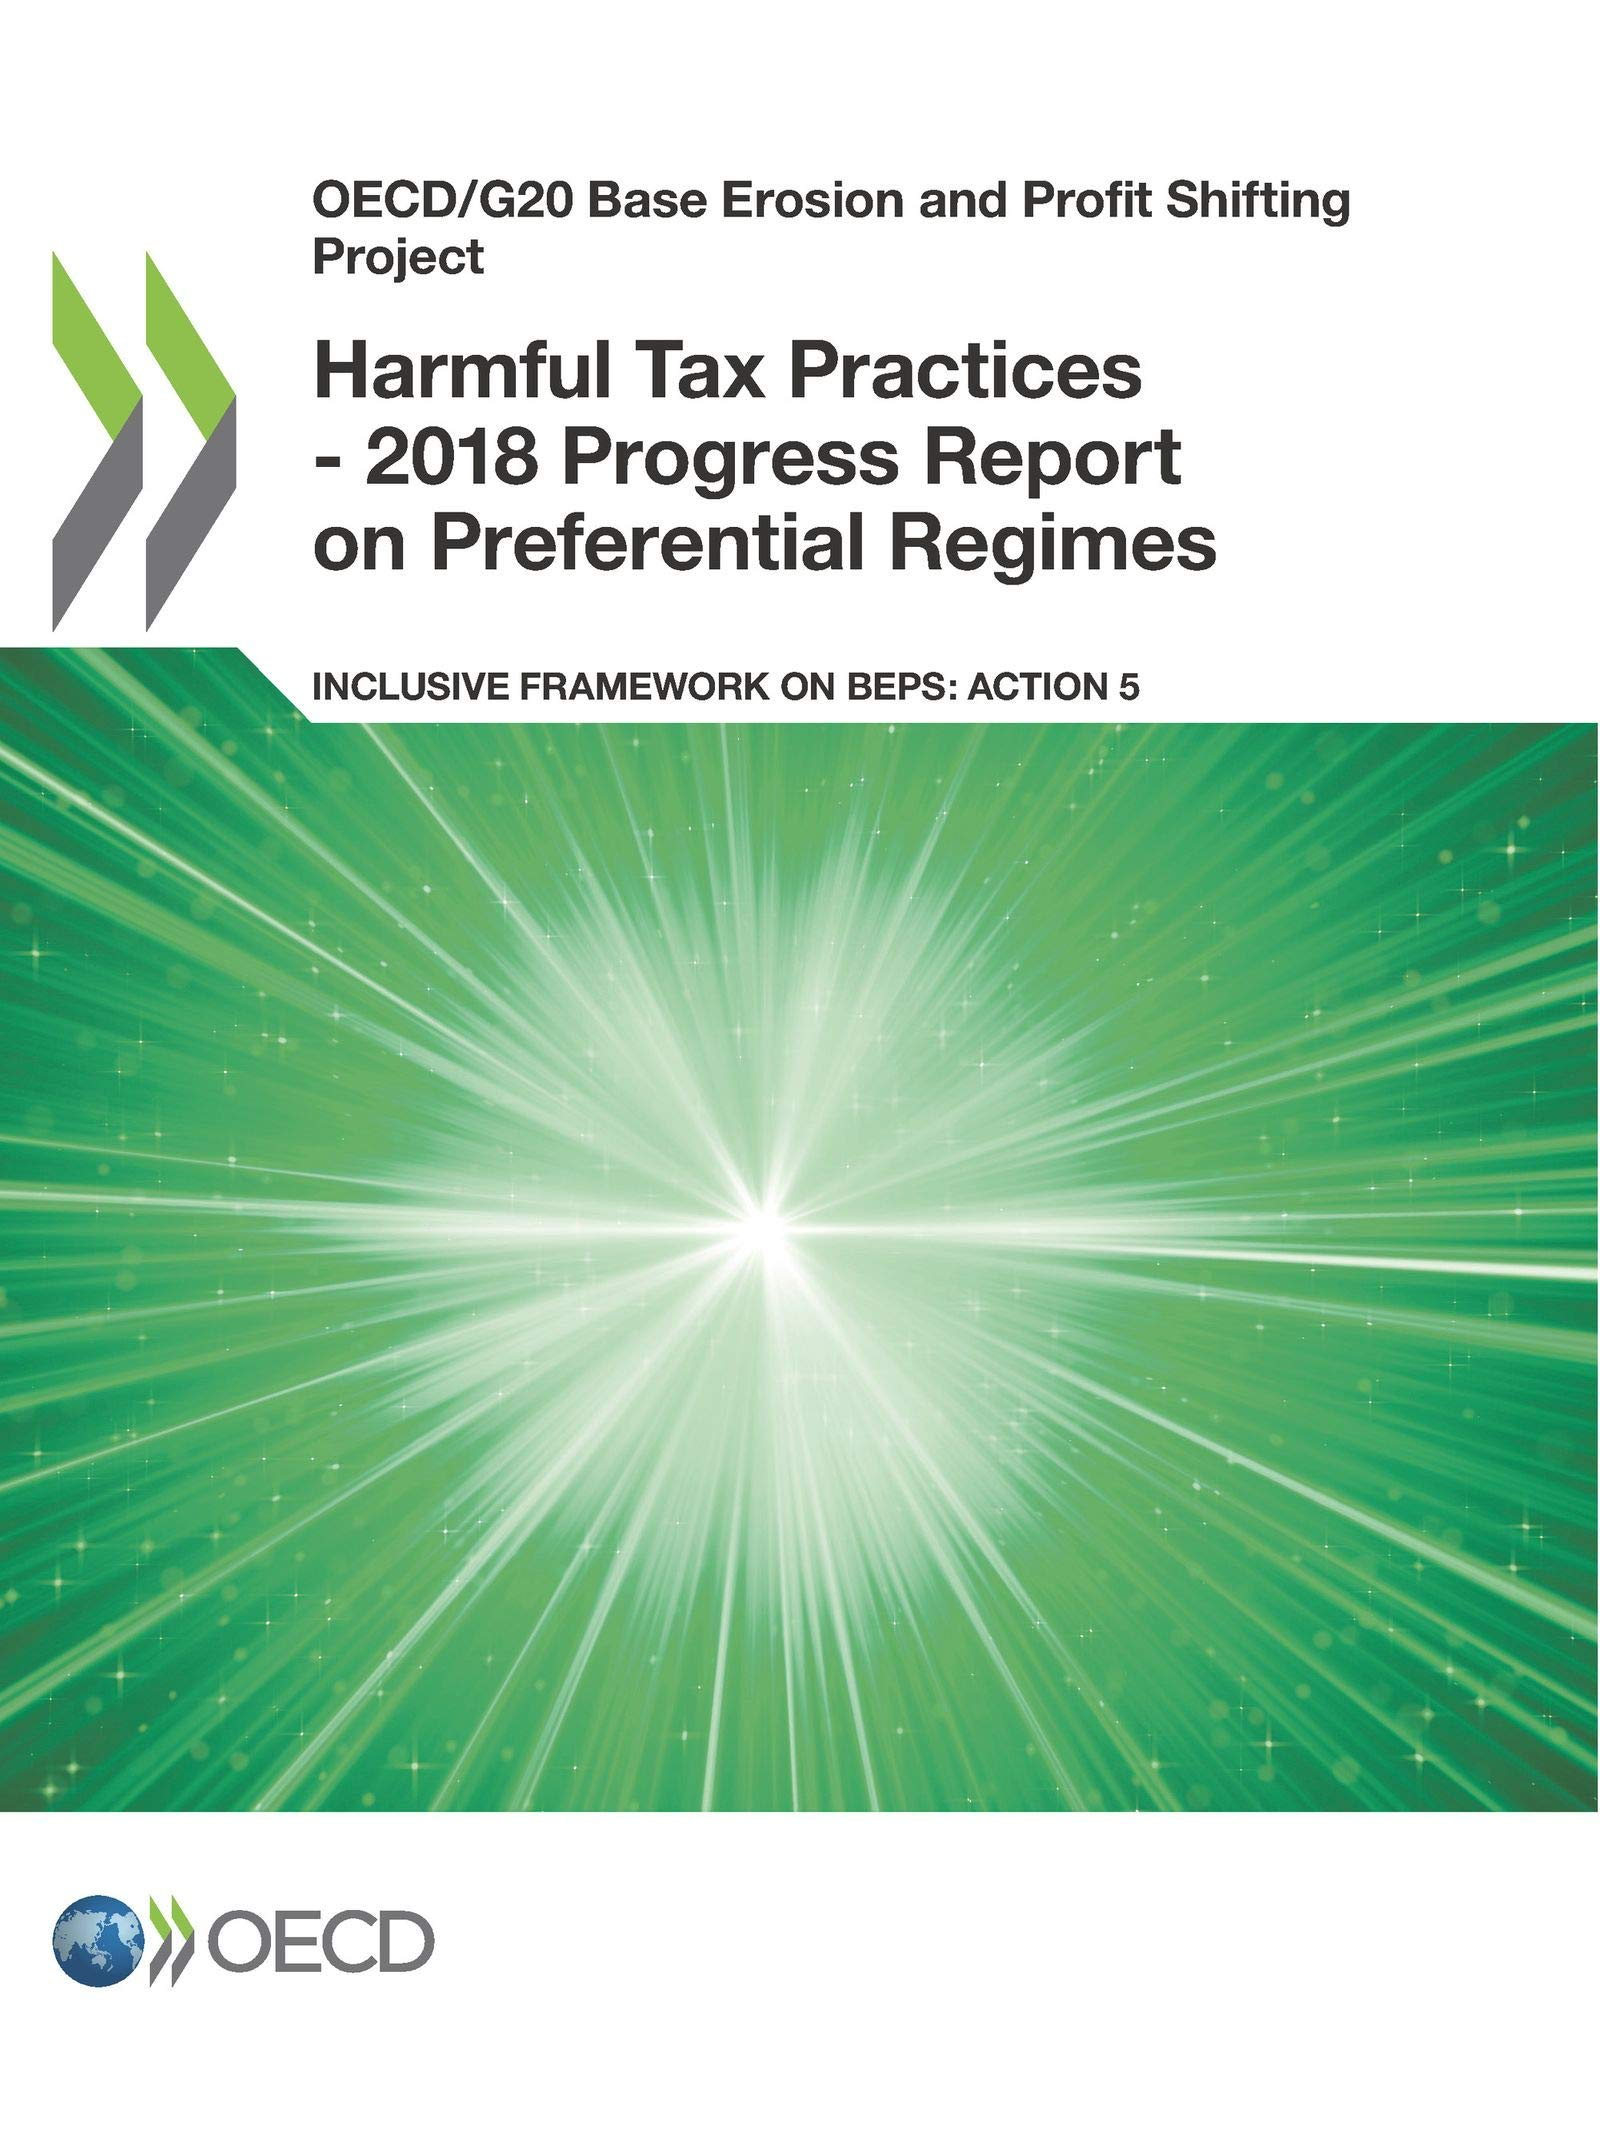 Oecd G20 Base Erosion And Profit Shifting Project Harmful Tax Practices 2018 Progress Report On Preferential Regimes Inclusive Framework On Beps Action 5 Oecd 9789264311473 Amazon Com Books